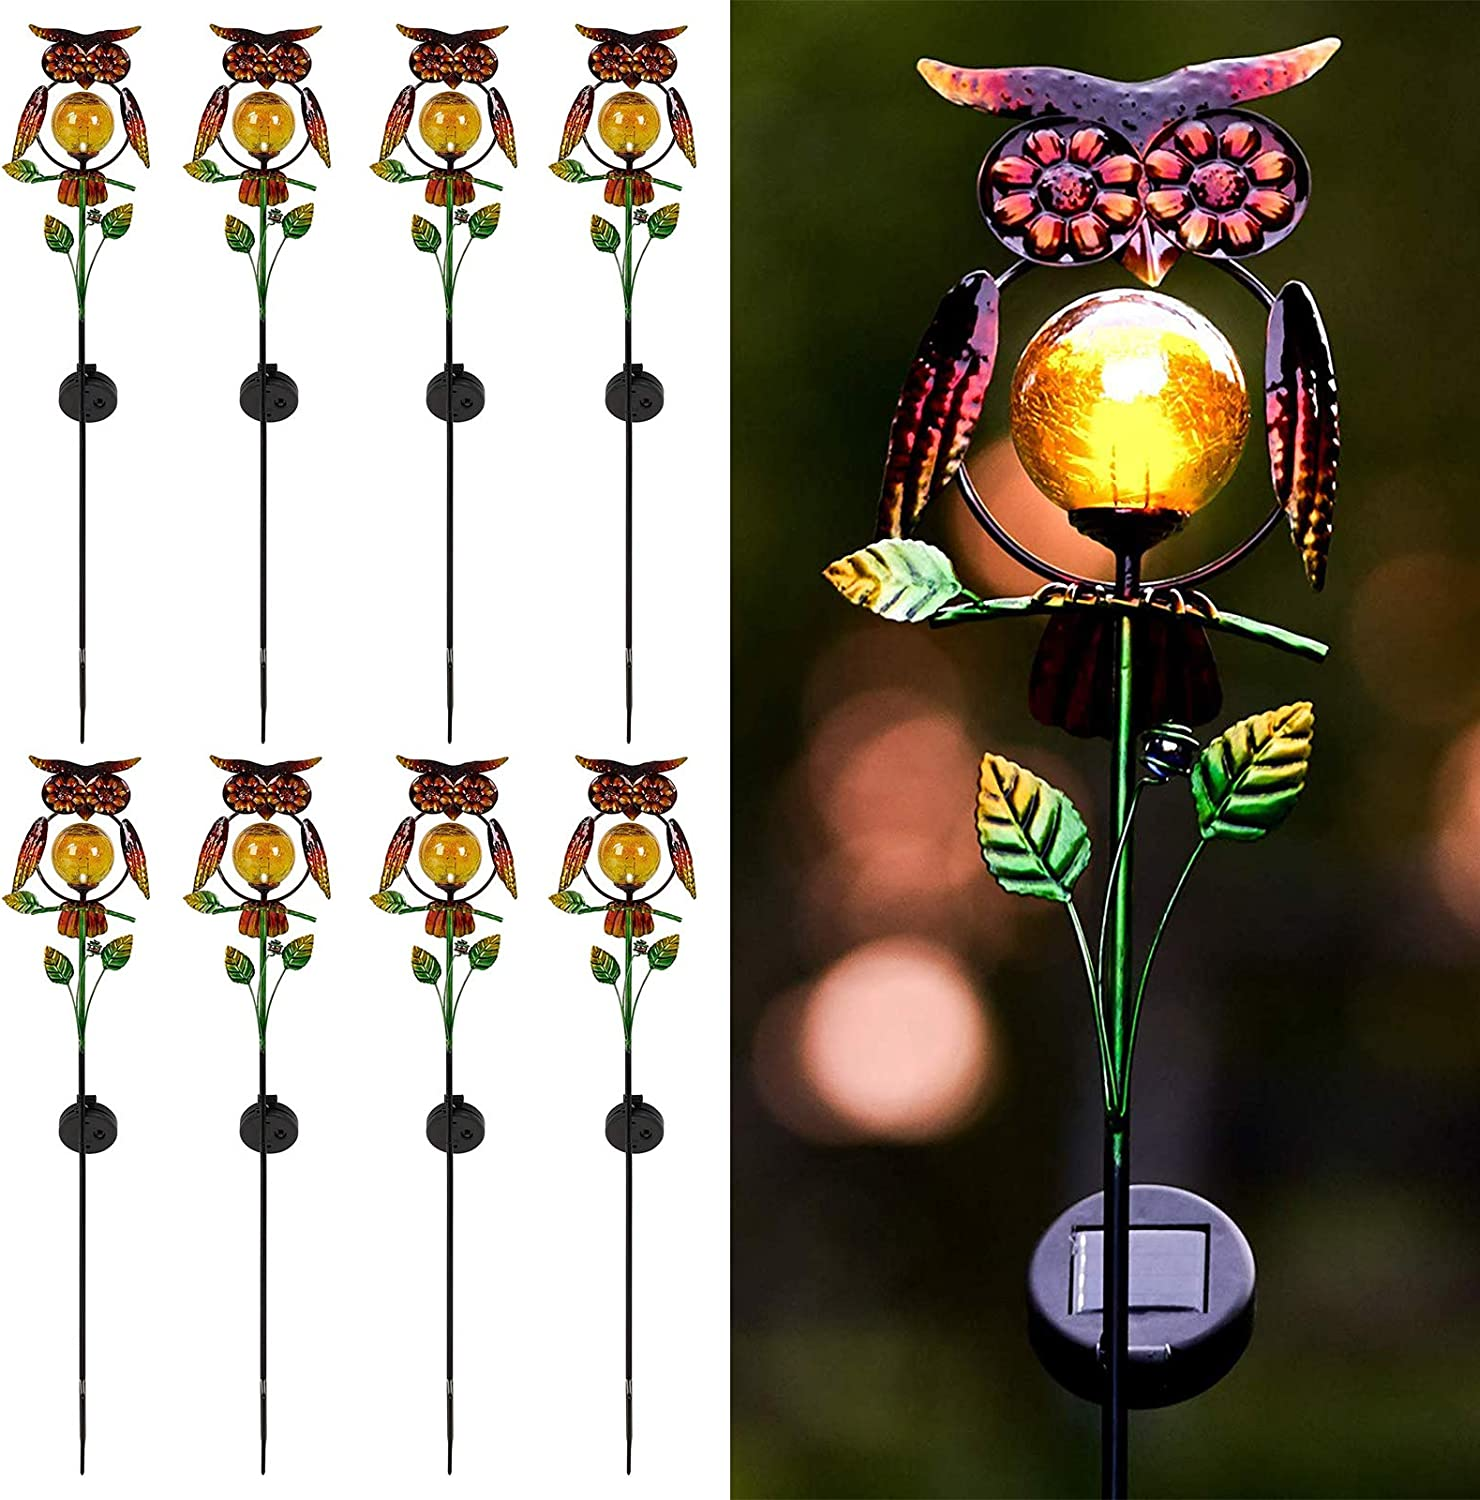 SA Products Solar Owl Stake Light Metal Build White LED Bulb 6-8H Battery Life Lighting Sensor Waterproof Solar Panel Yard Patio Outdoor Decorative Animal Lamp Ornament for Garden 1-Pack